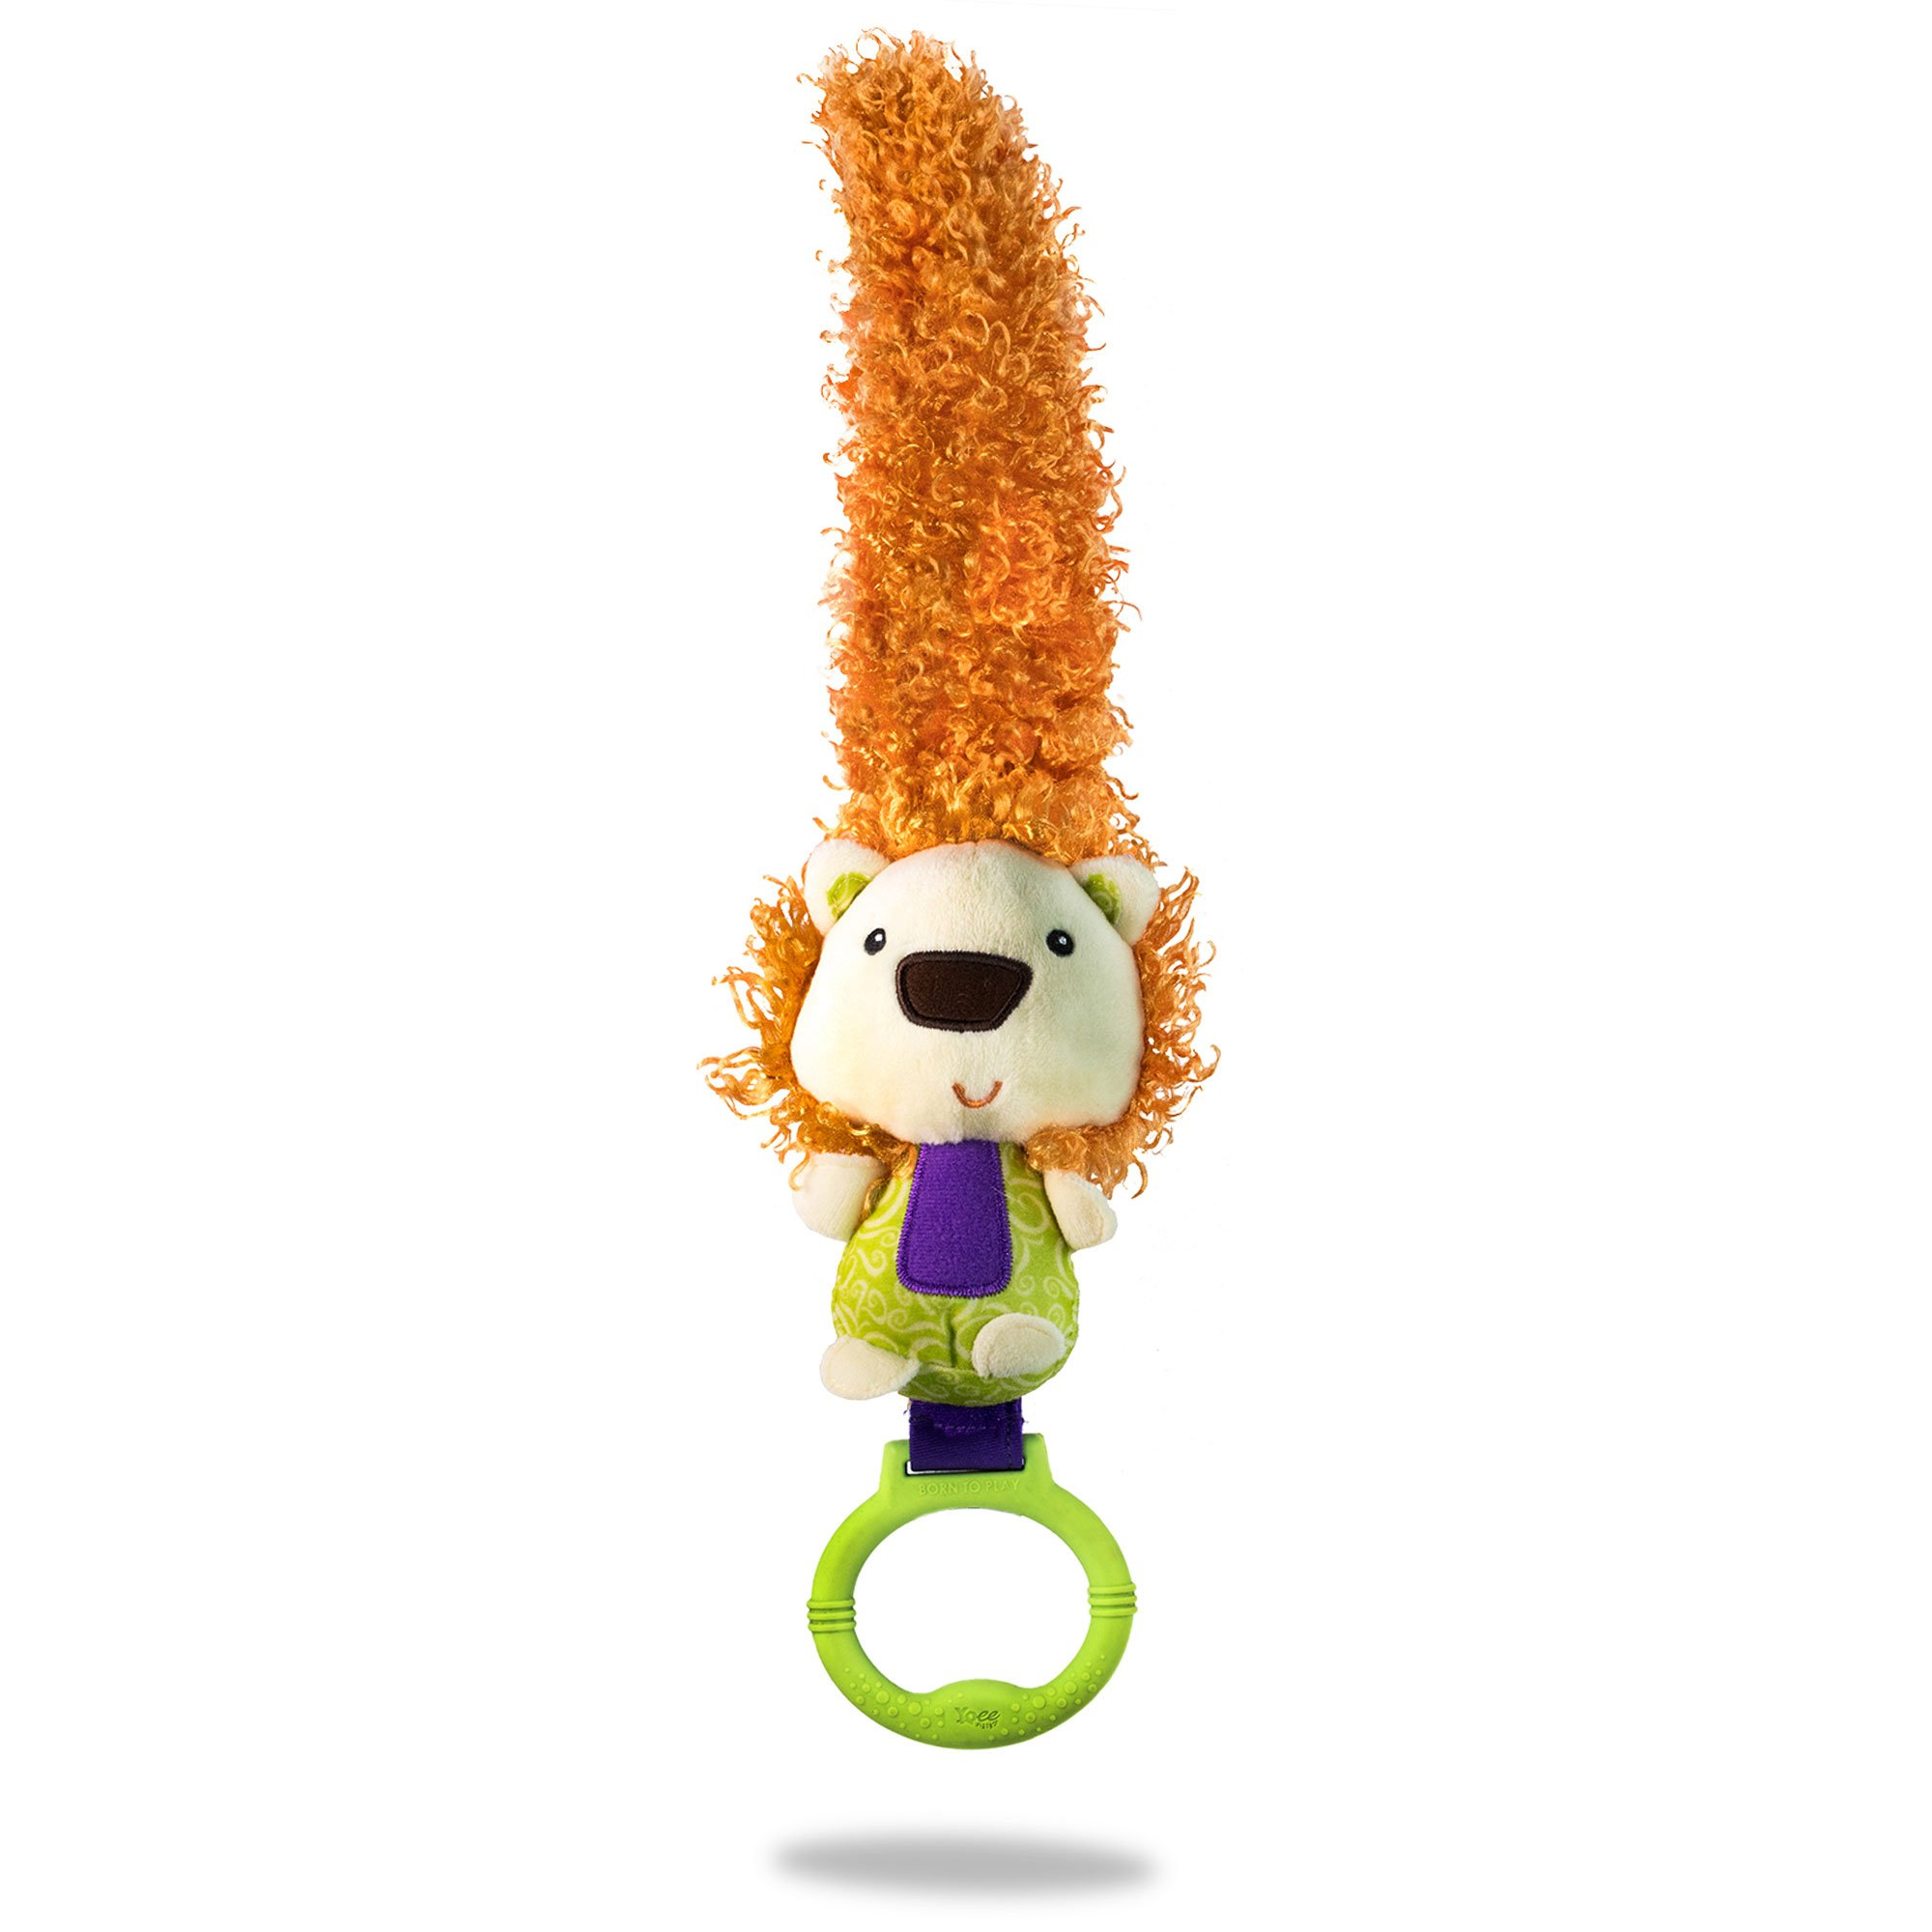 Yoee Baby Lion - A Developmental Newborn Baby Toy for Bonding and Play from Day One